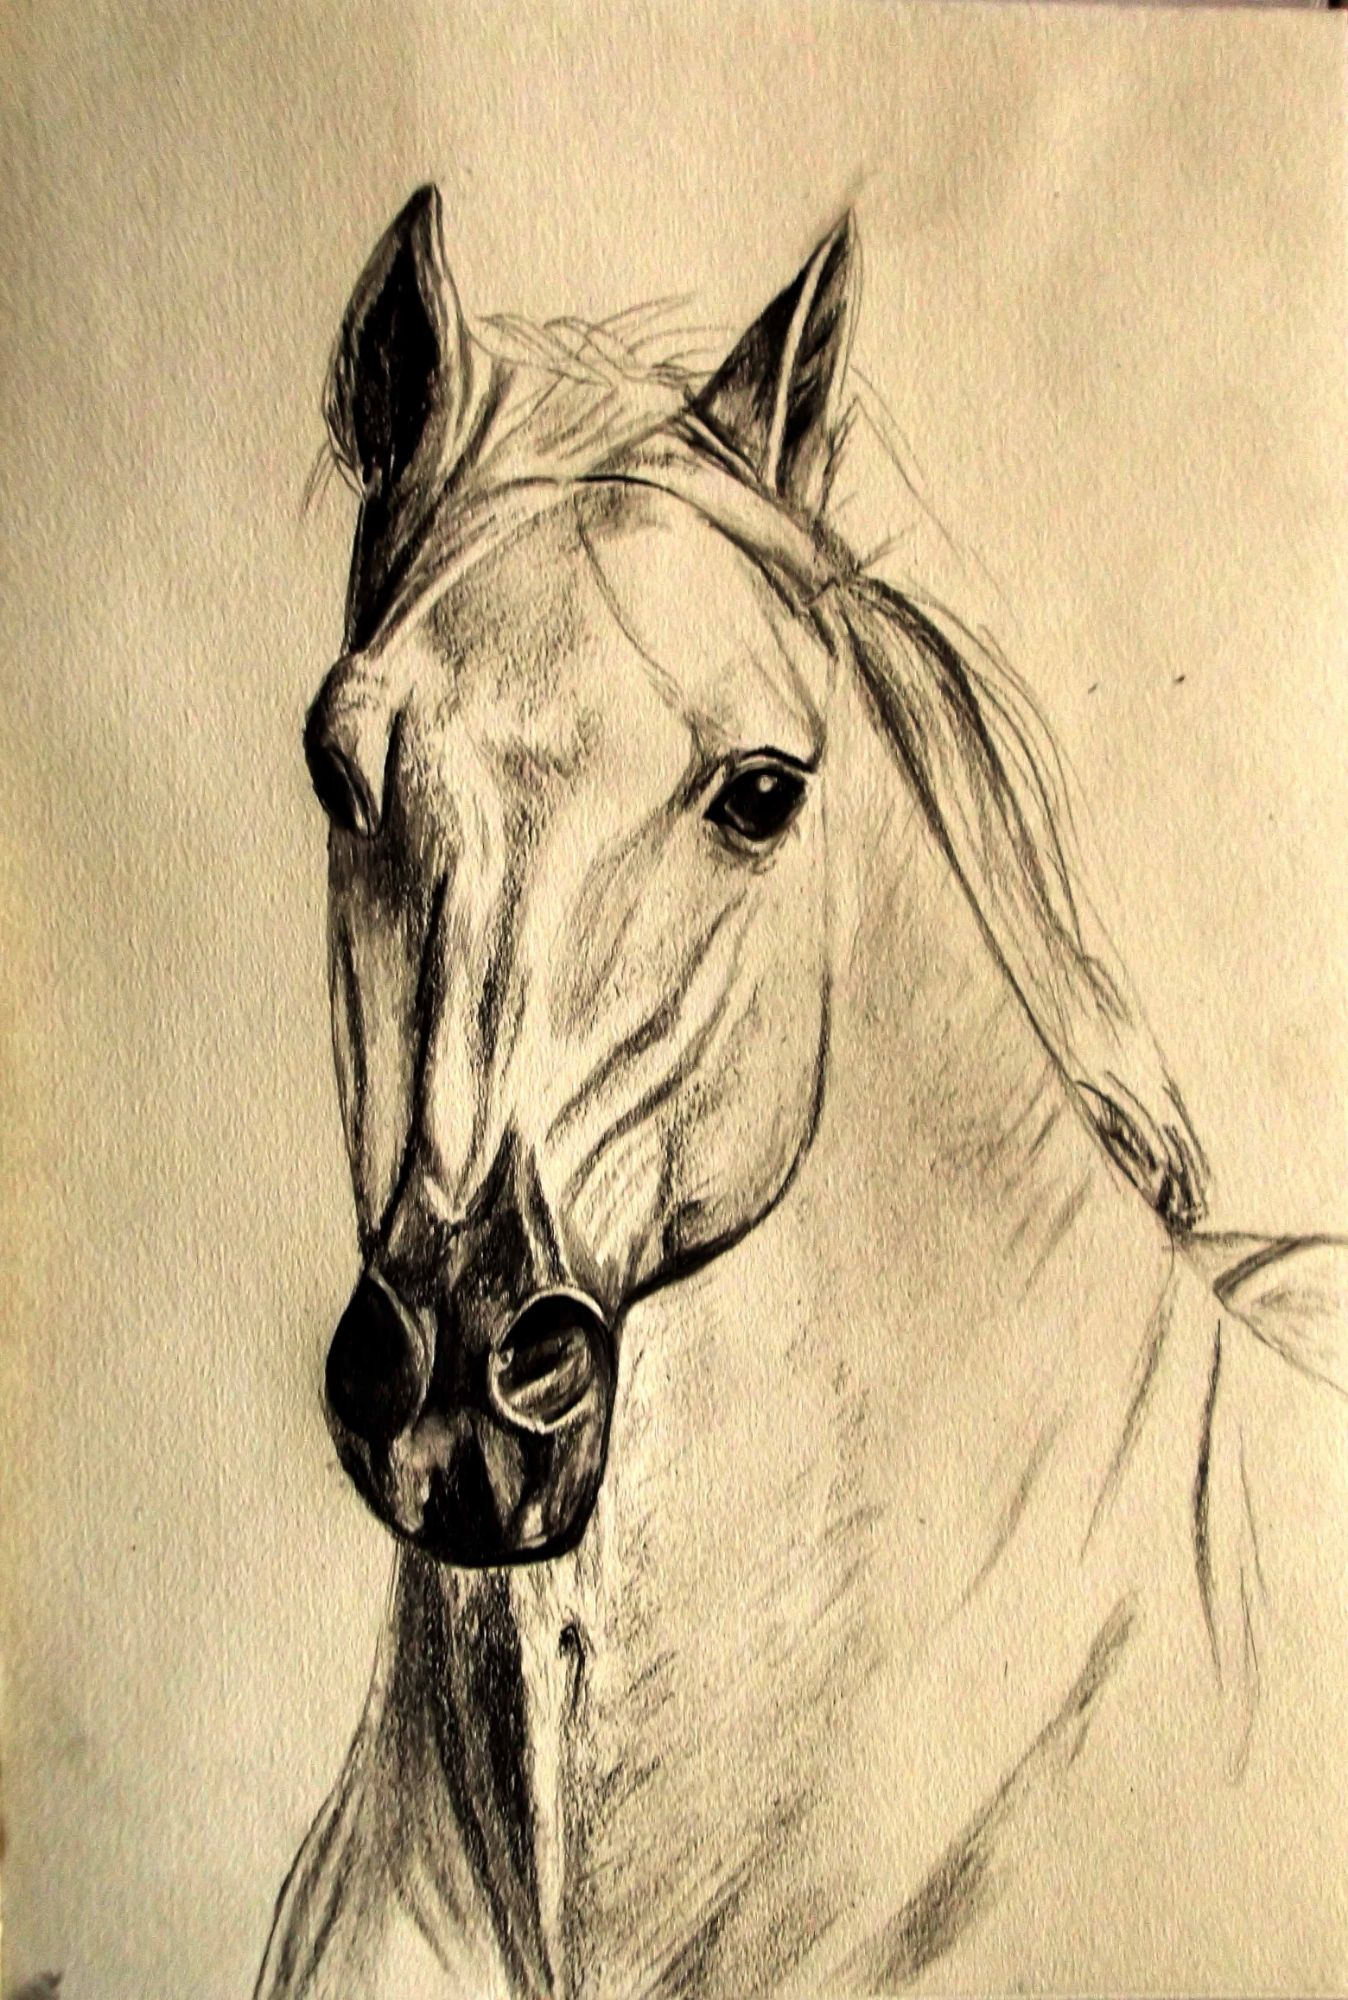 Christine Pallett, Drawing of a Horse.